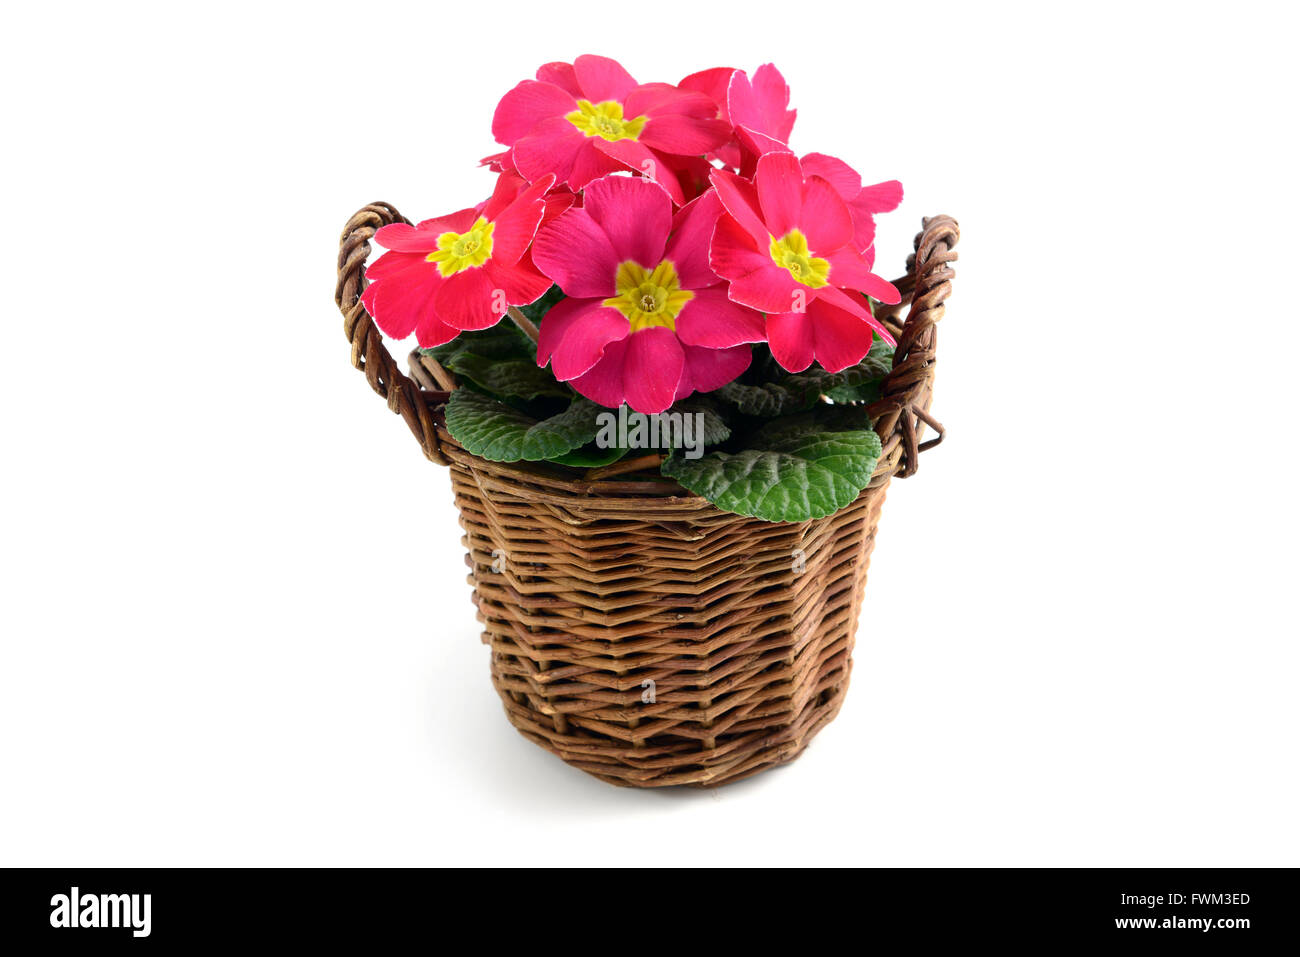 Pink Flower Pot Against White Background Stock Photo 101860037 Alamy